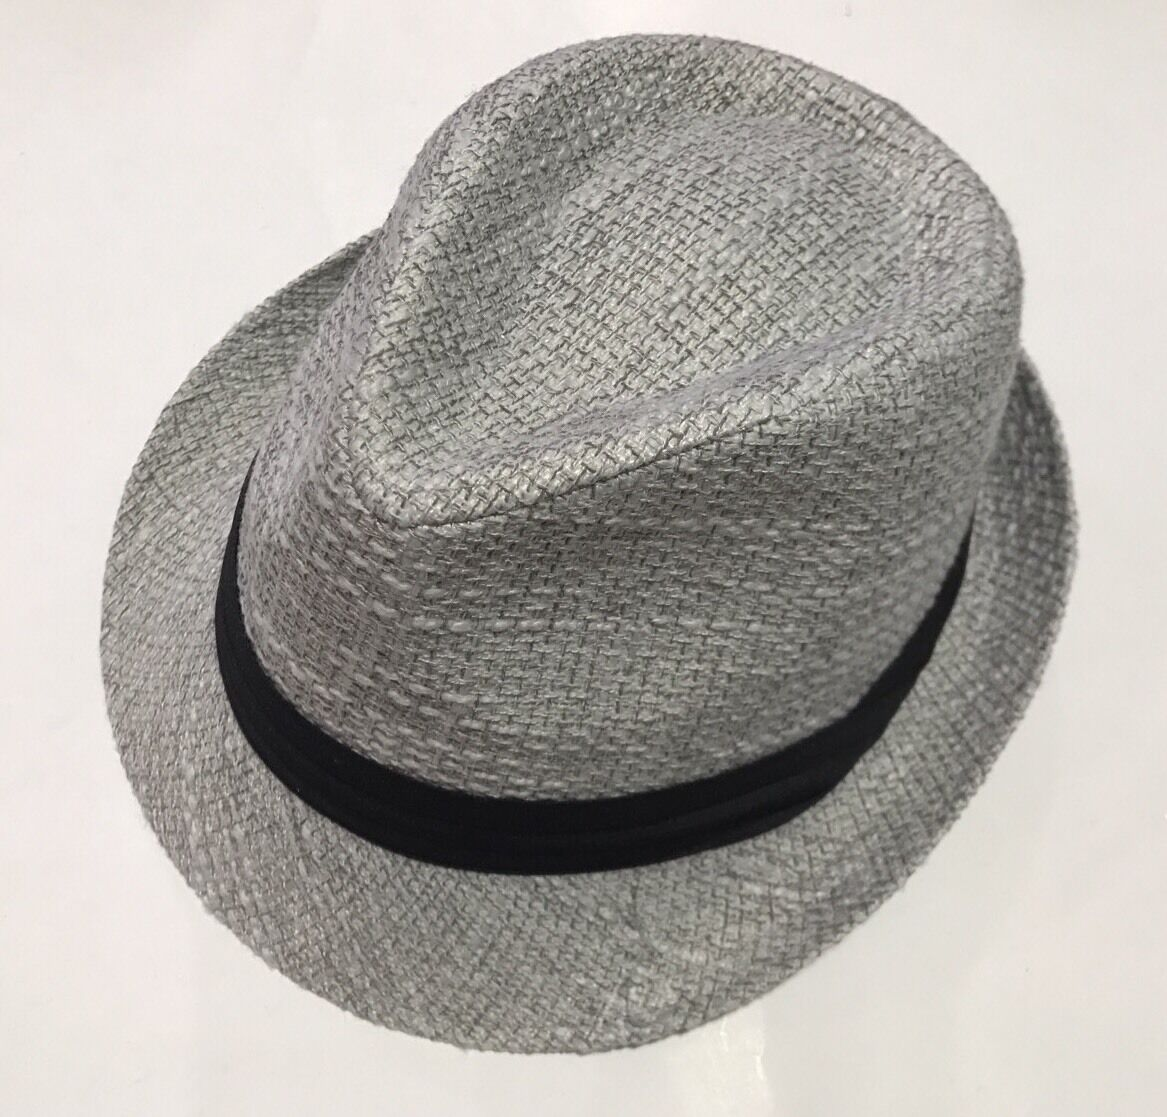 Bruno Conte's 100% Polyester Men's Men's Men's Fedora Silver Hat Large Size 09e475